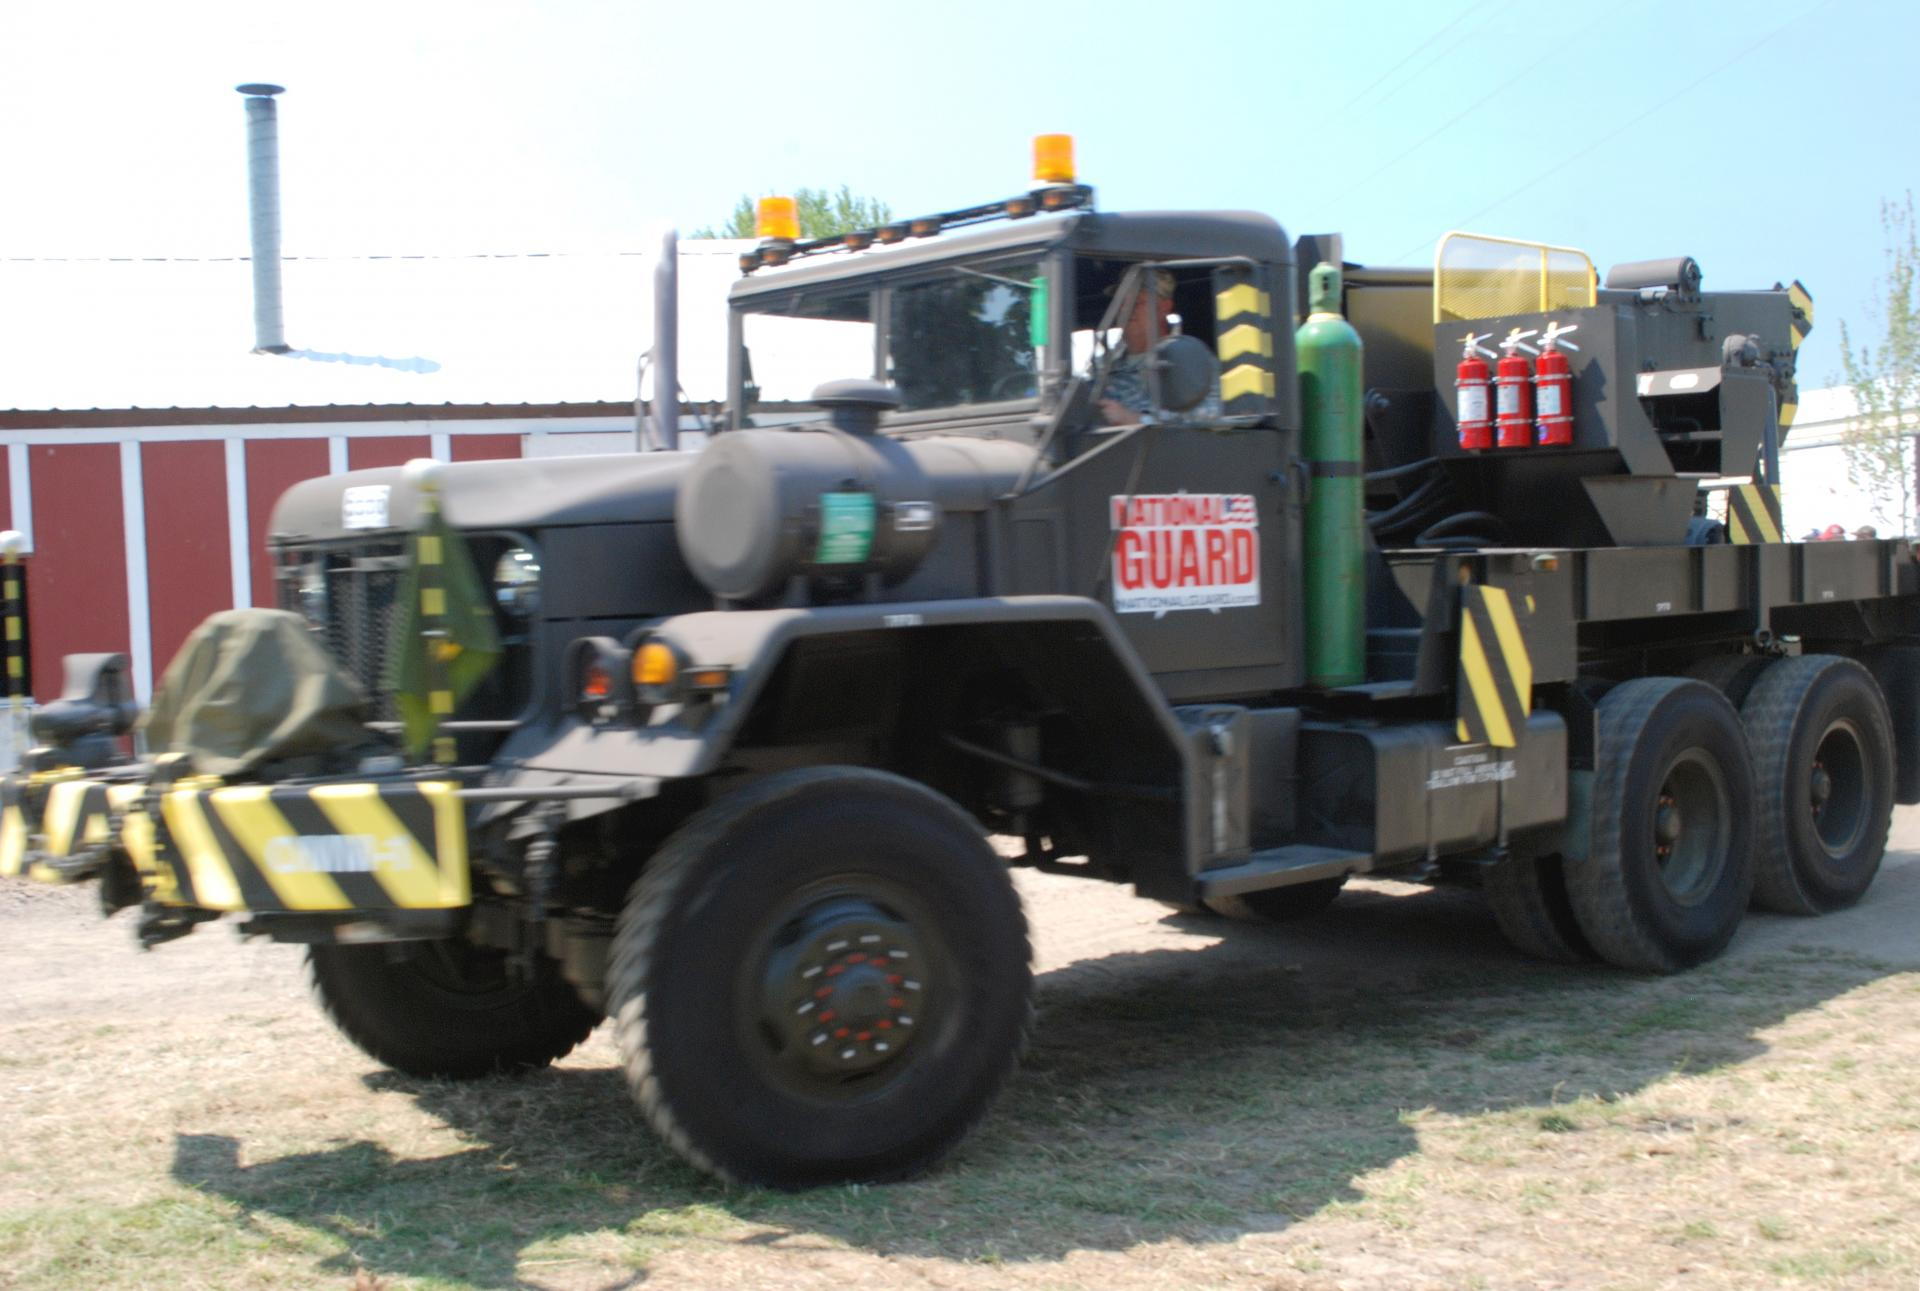 M-816 Truck, Wrecker, Medium, 5-Ton, 6x6 1969 AM General boom ft lf (2).JPG